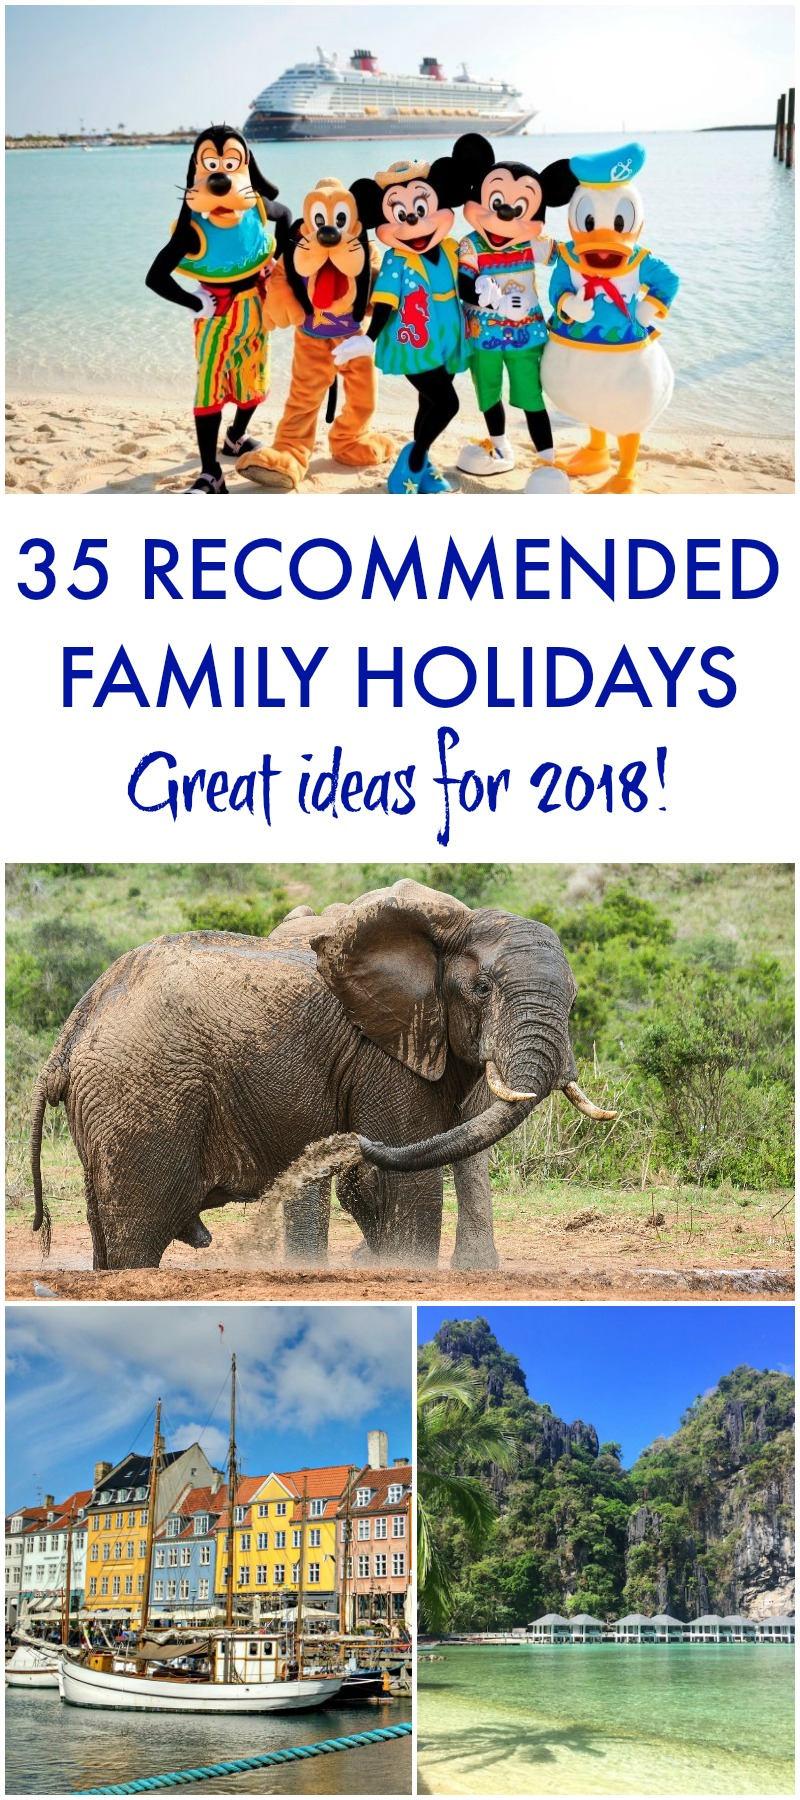 35 RECOMMENDED FAMILY HOLIDAYS Great ideas for 2018!